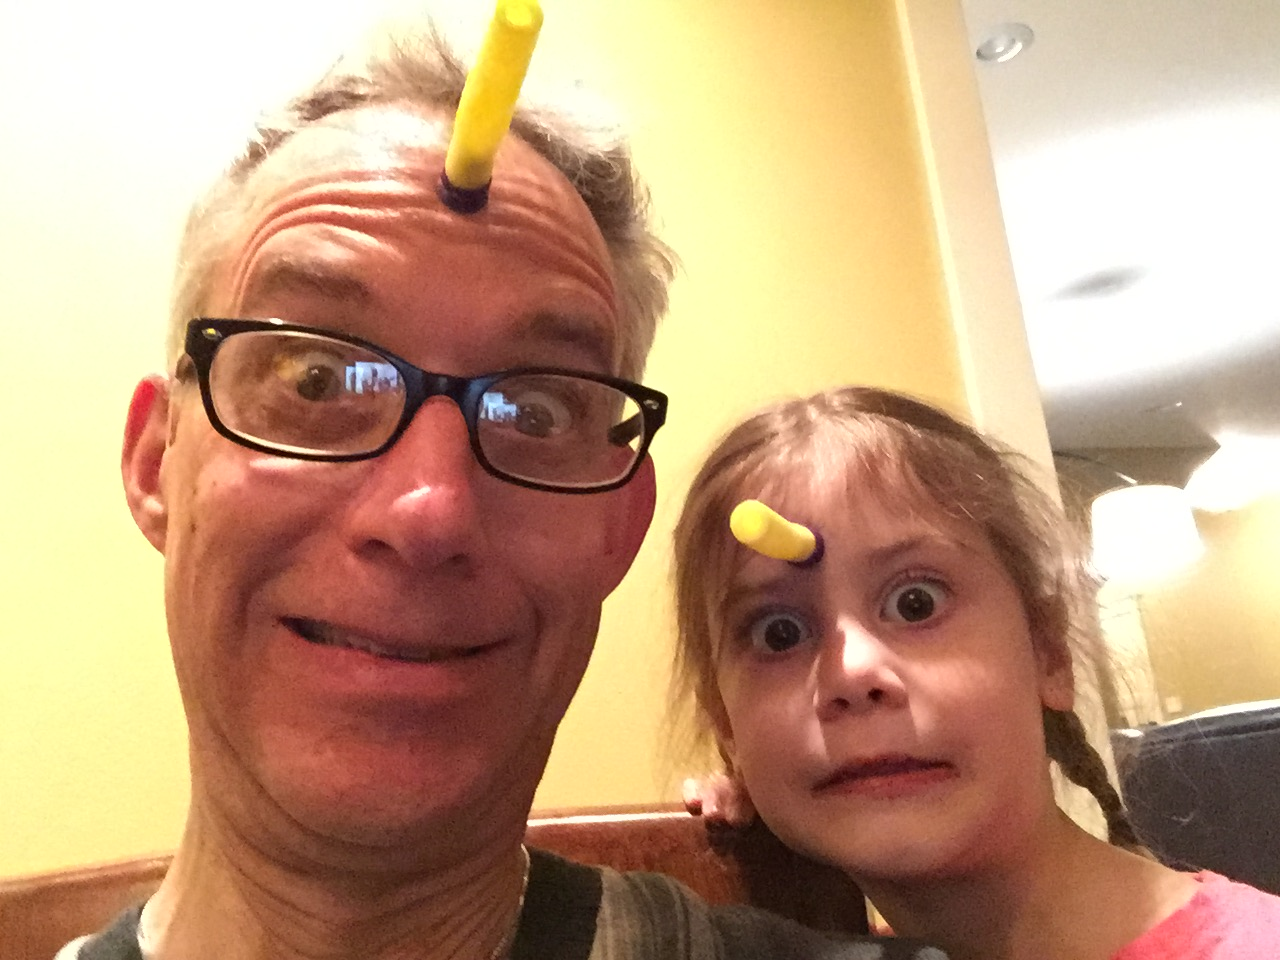 I had fun teaching Madeline the joy of sticking nerf darts on your forehead!